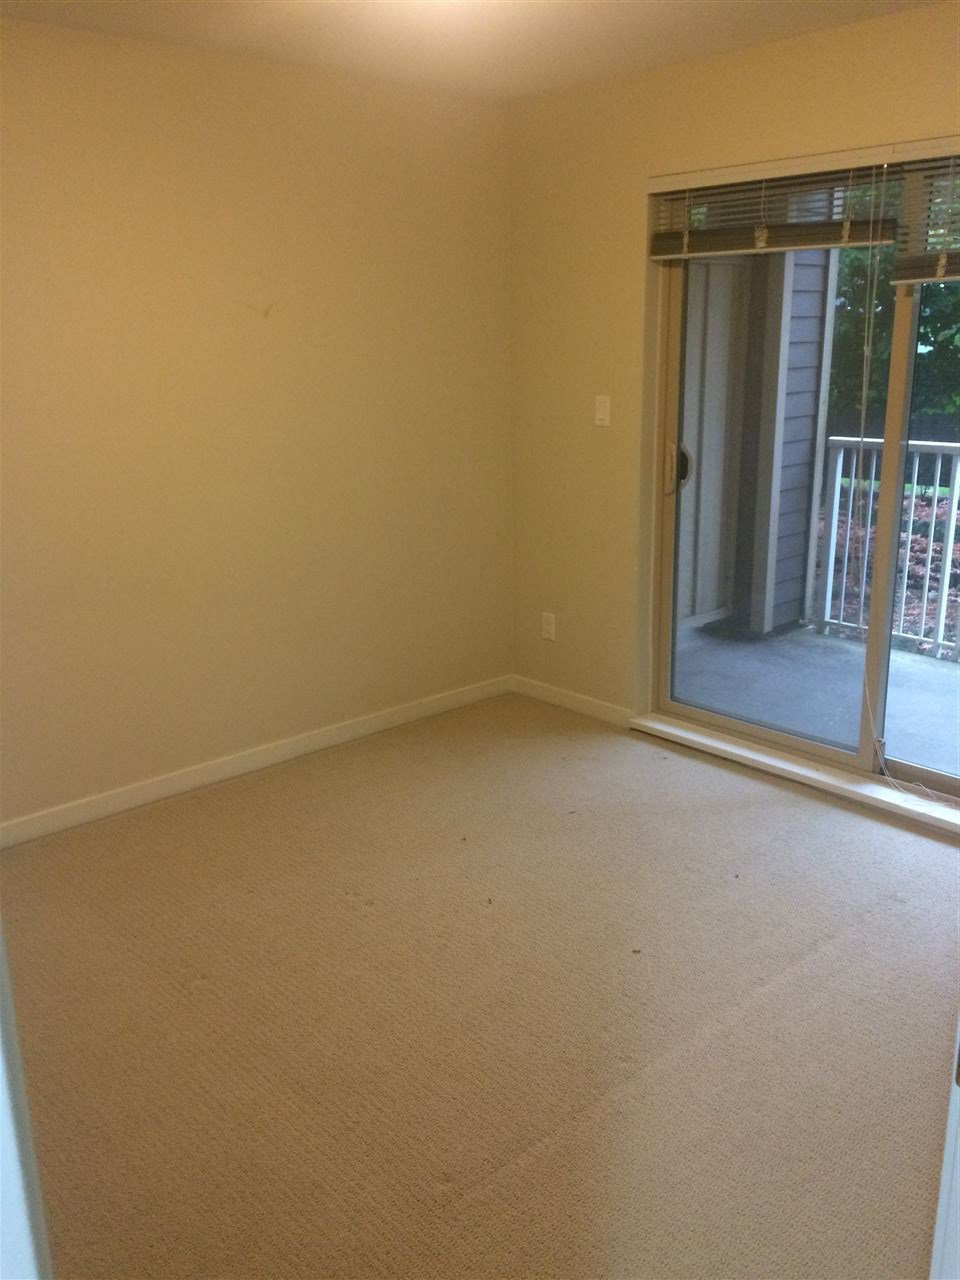 Photo 6: Photos: 208 7337 MACPHERSON Avenue in Burnaby: Metrotown Condo for sale (Burnaby South)  : MLS®# R2208258